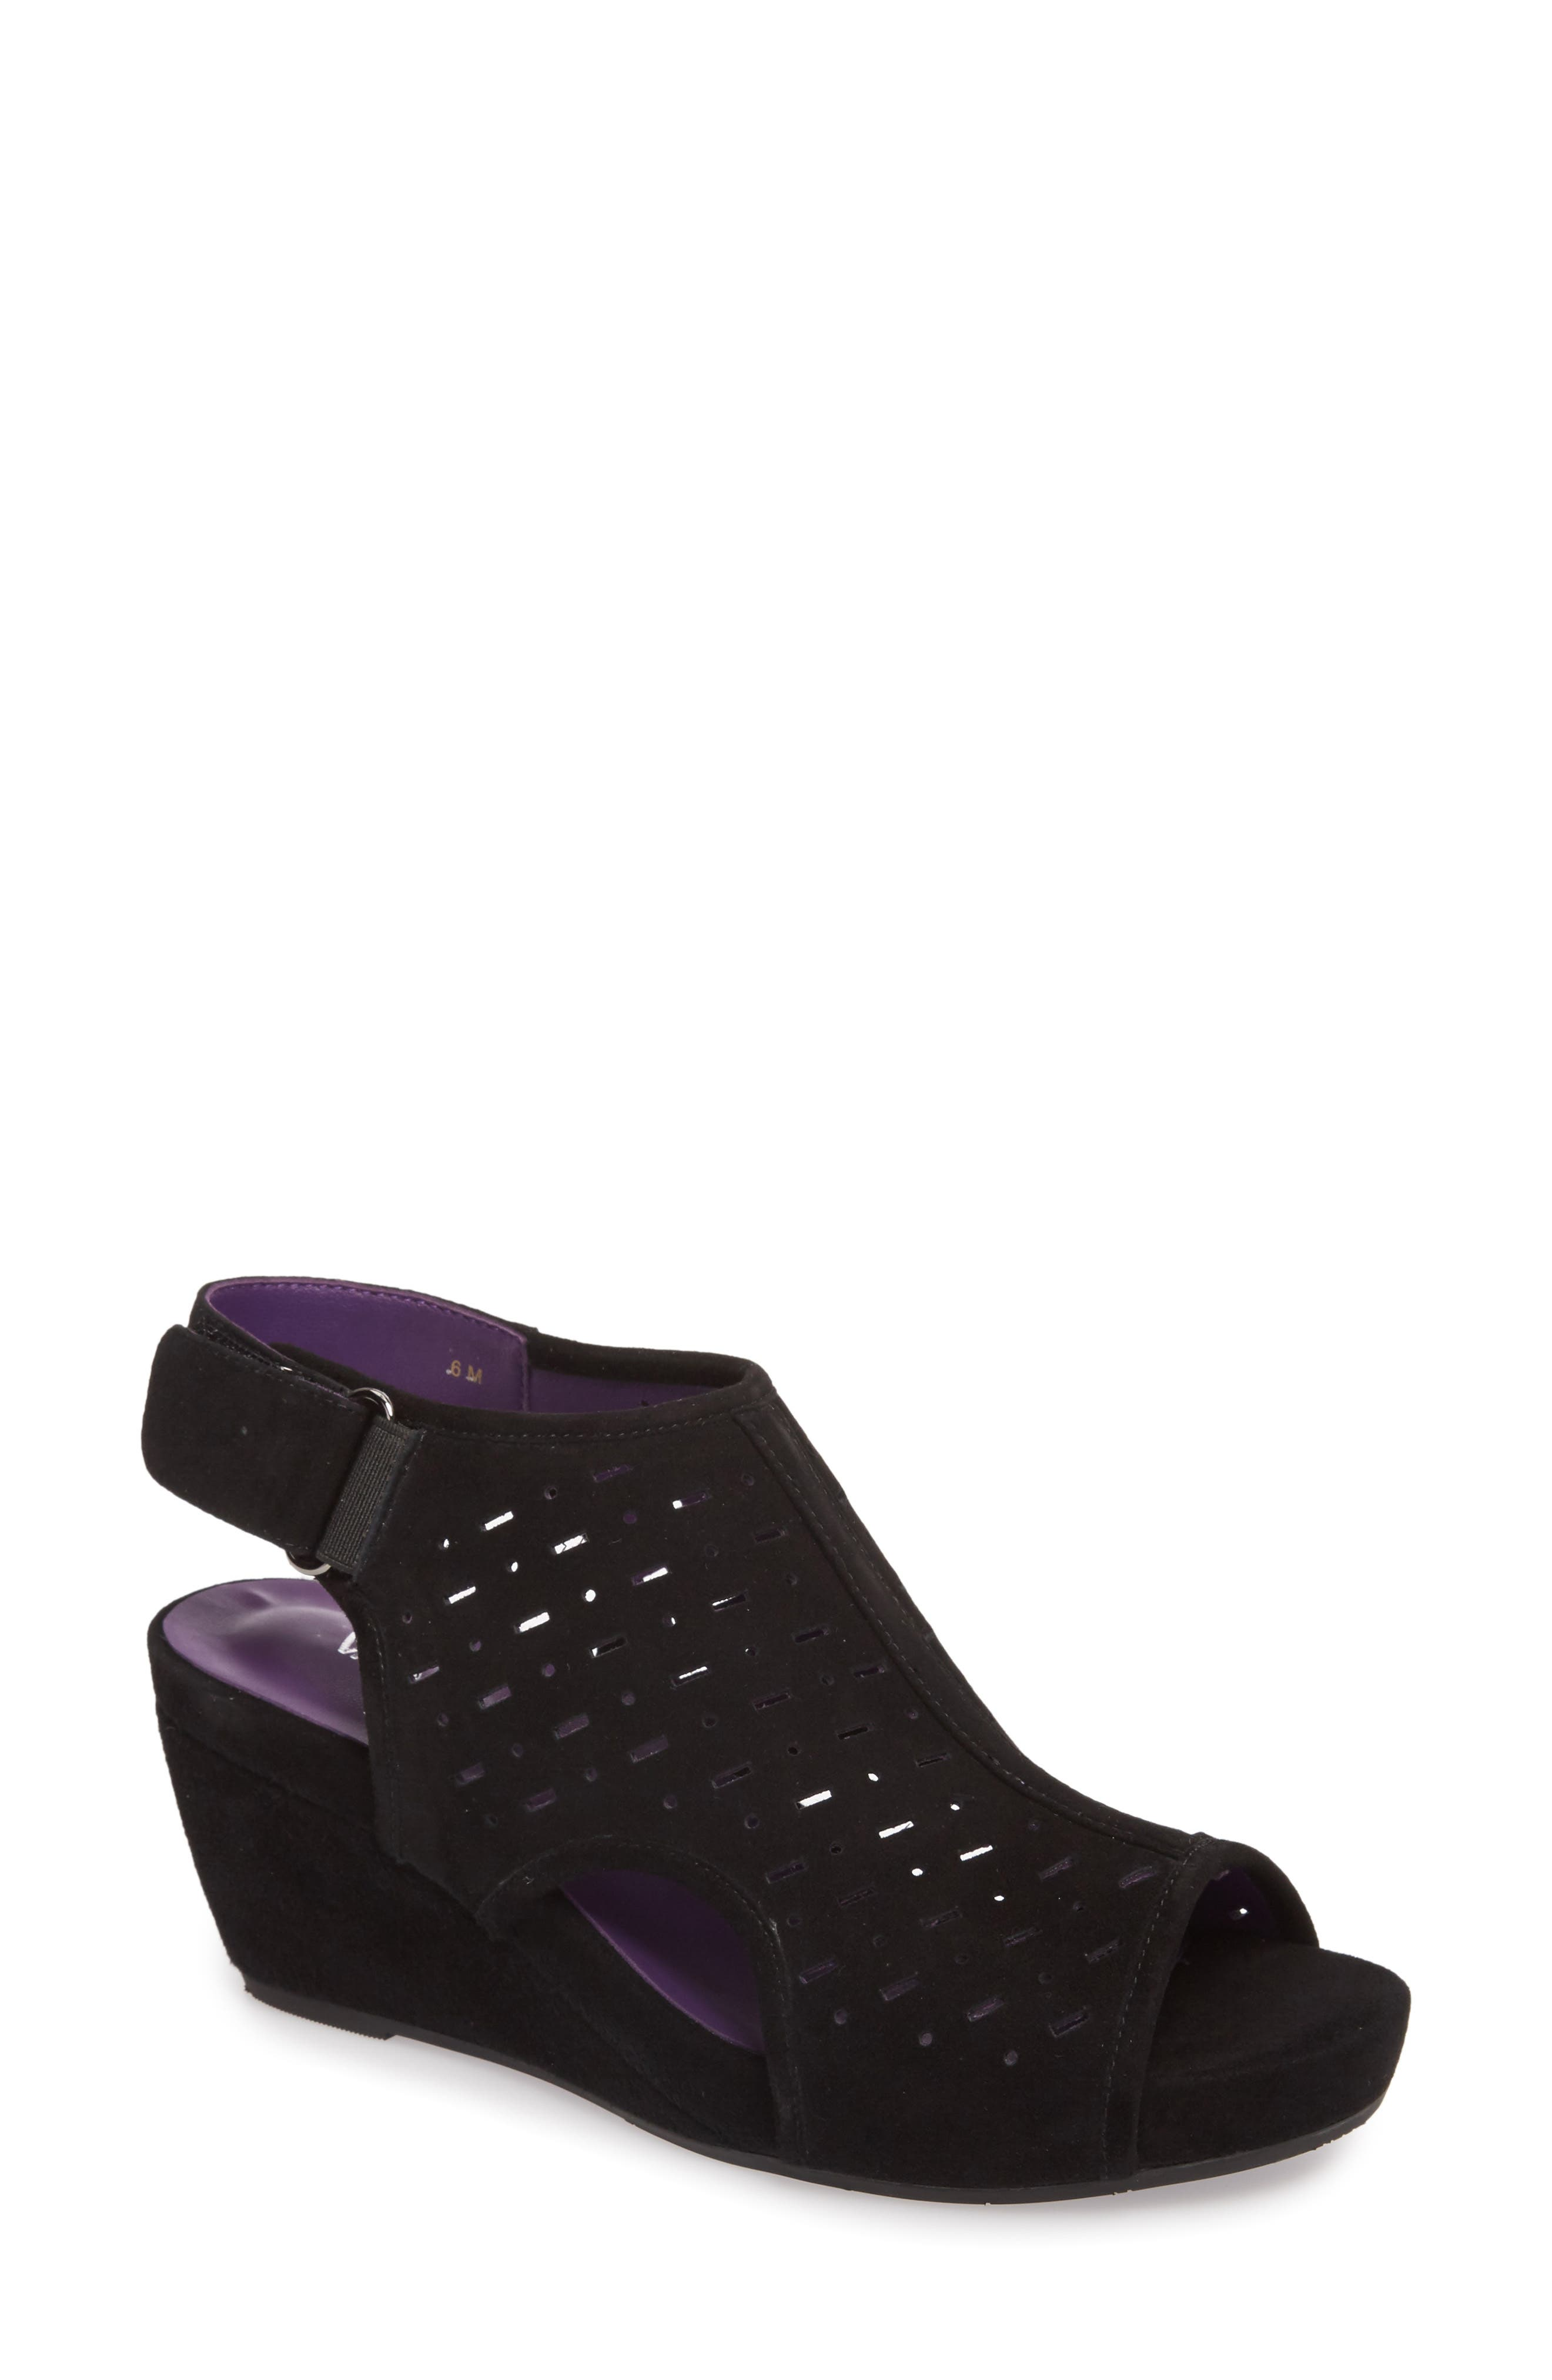 Ibis Wedge,                         Main,                         color, 001